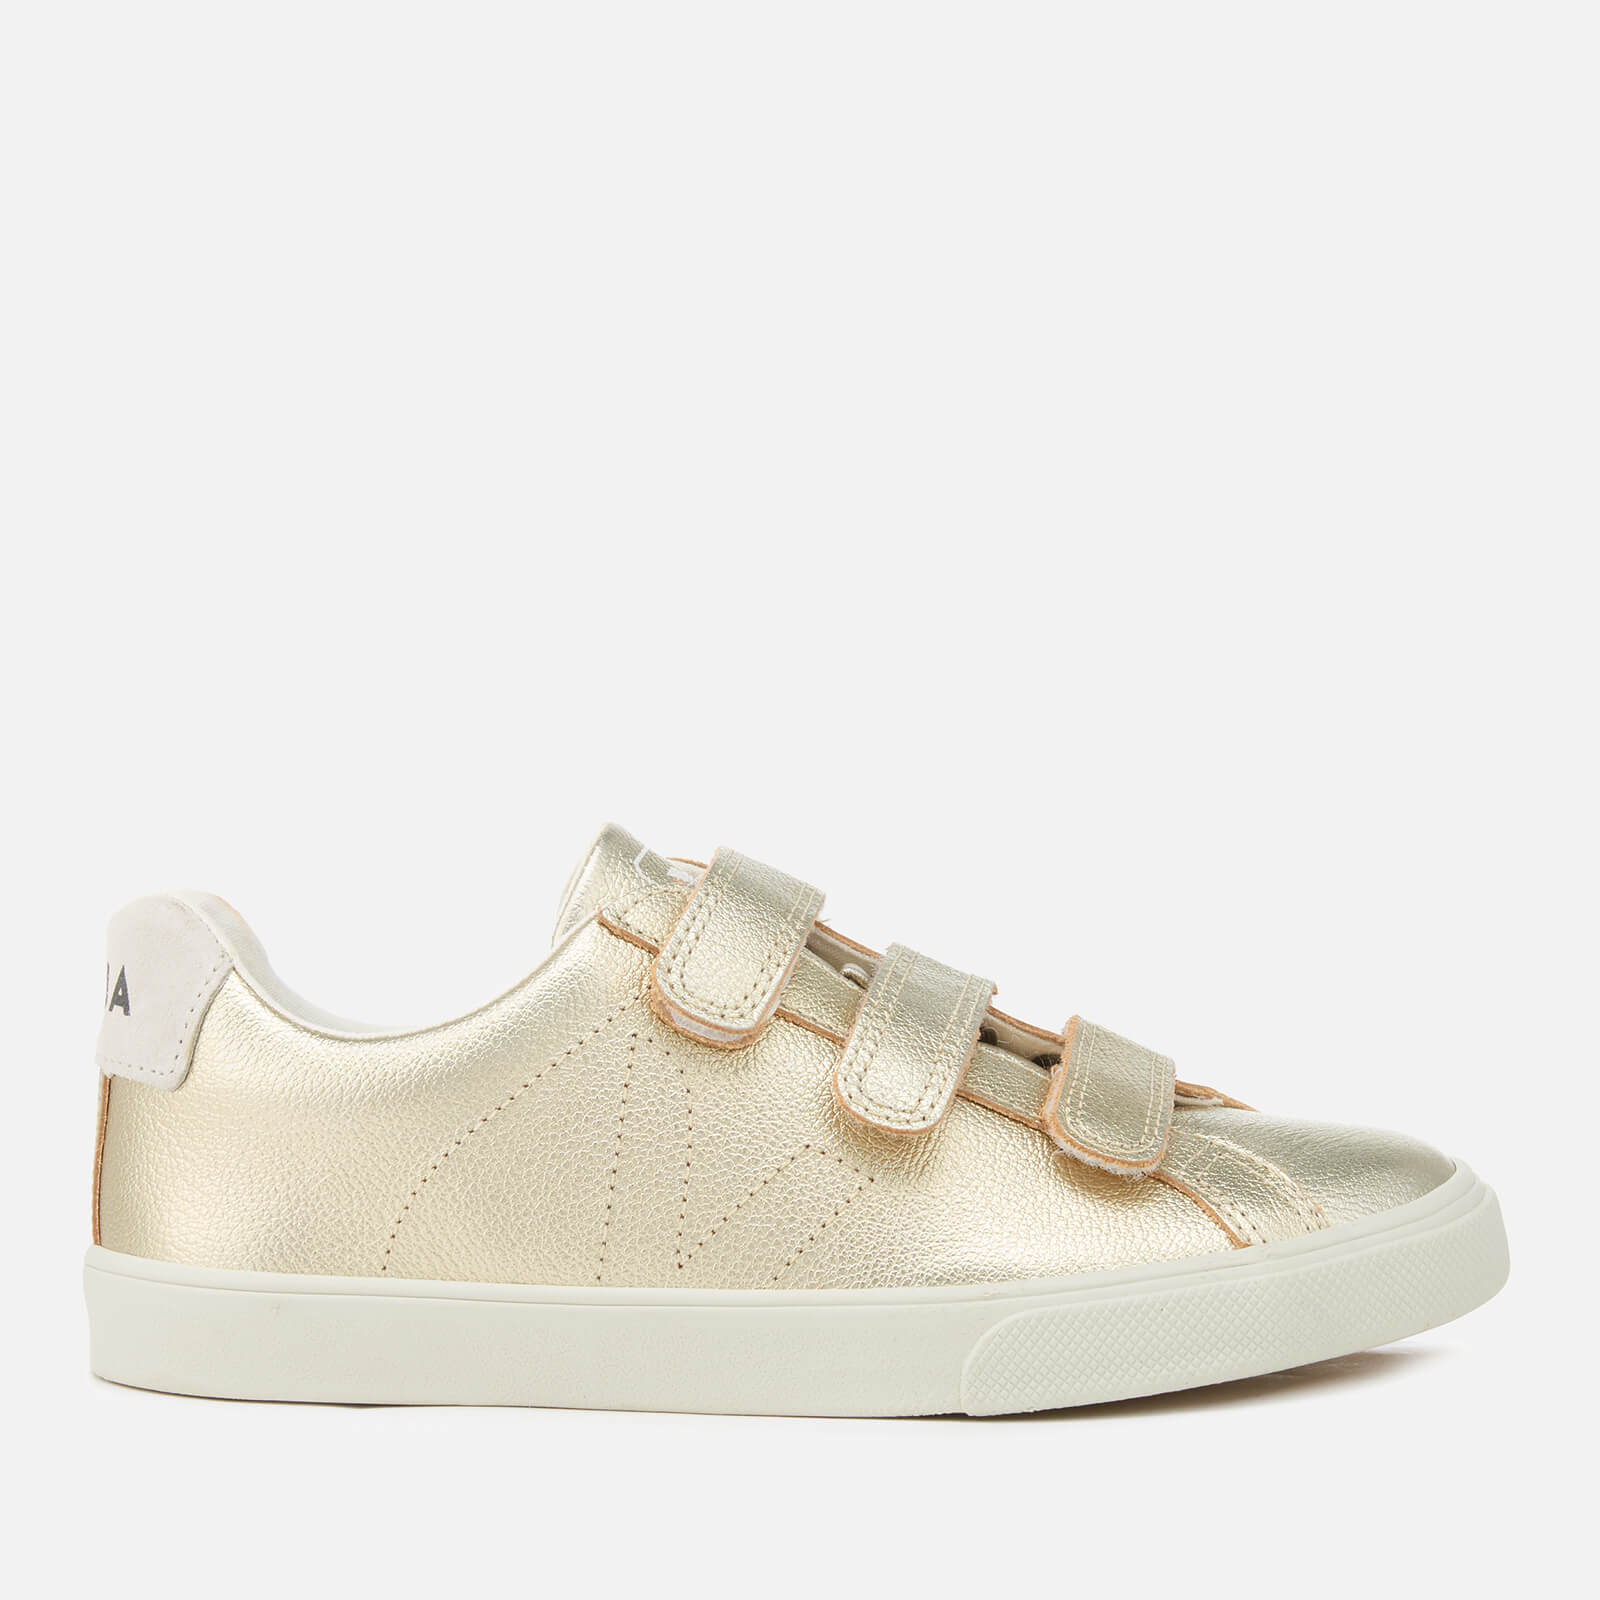 f9d5bc8fdd6145 Veja Women's 3 Lock Leather Trainers - Gold - Free UK Delivery over £50